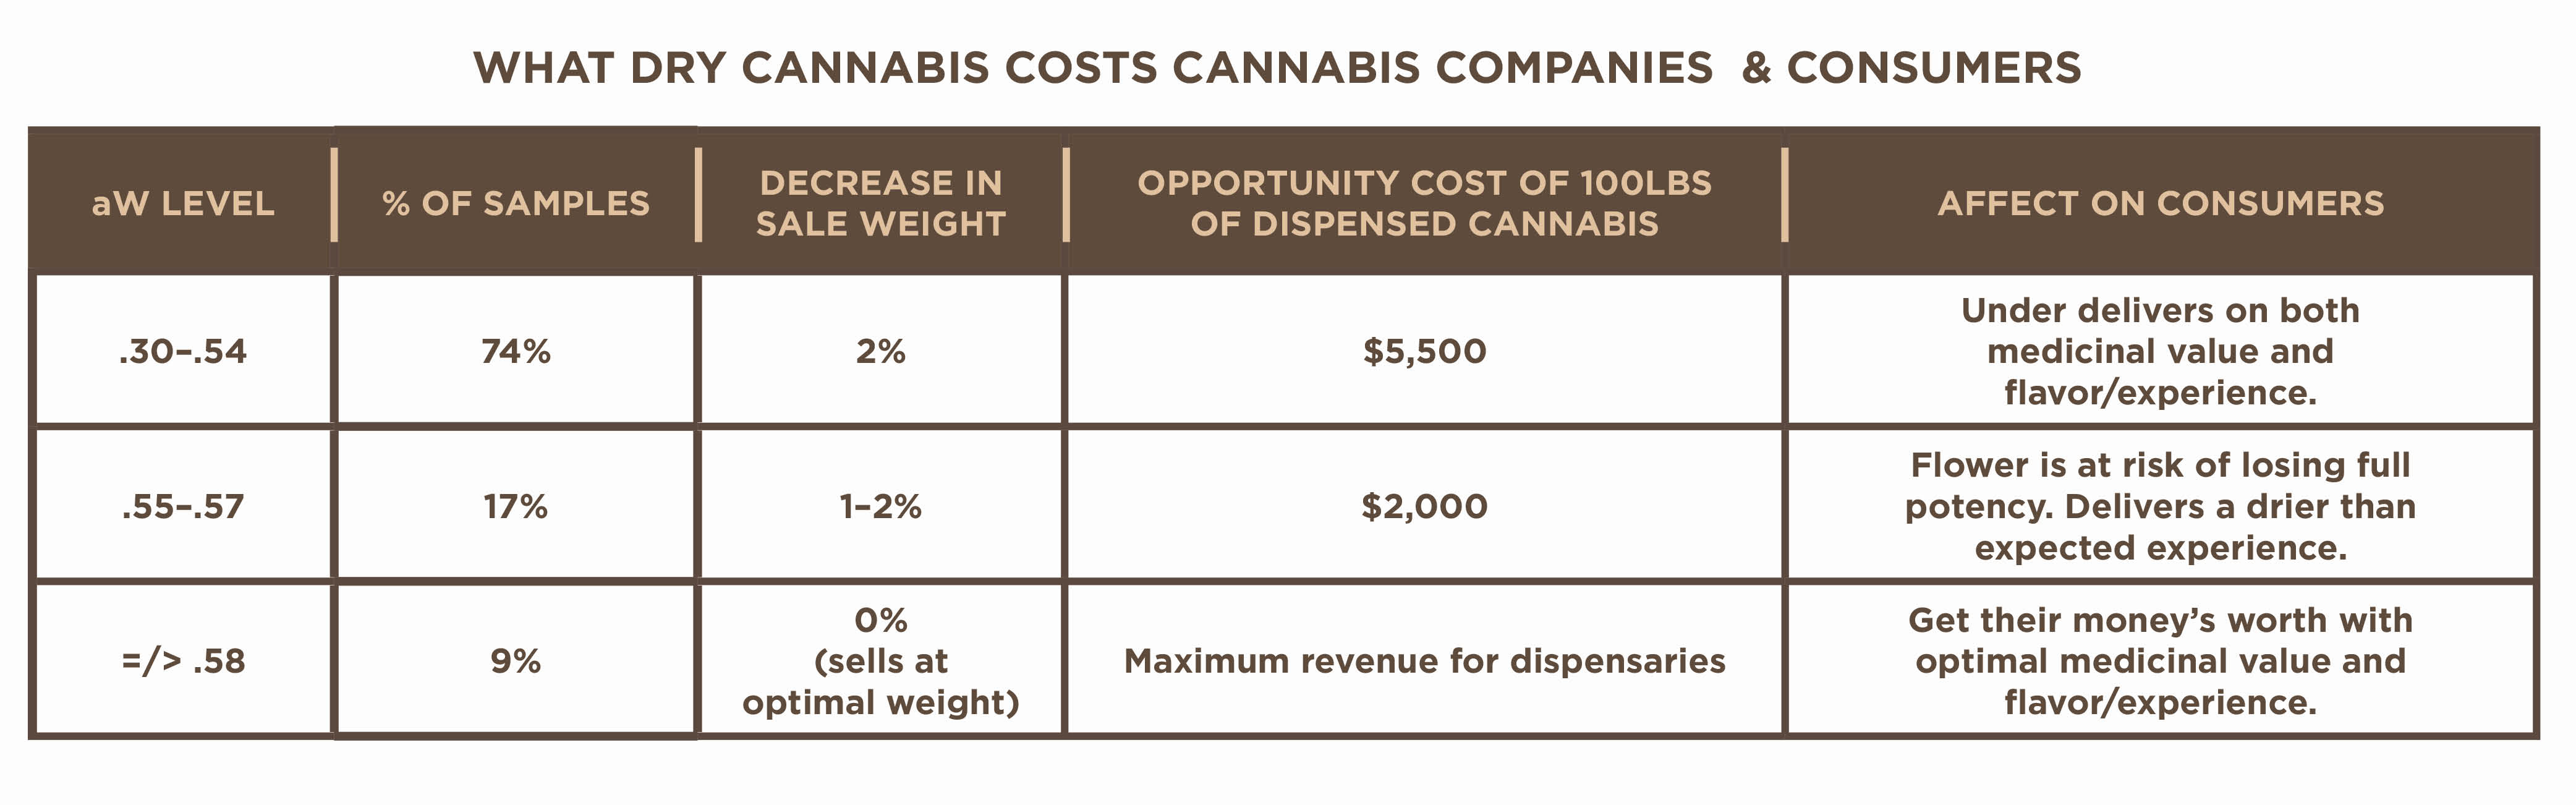 What dry cannabis costs cannabis companies & consumers.